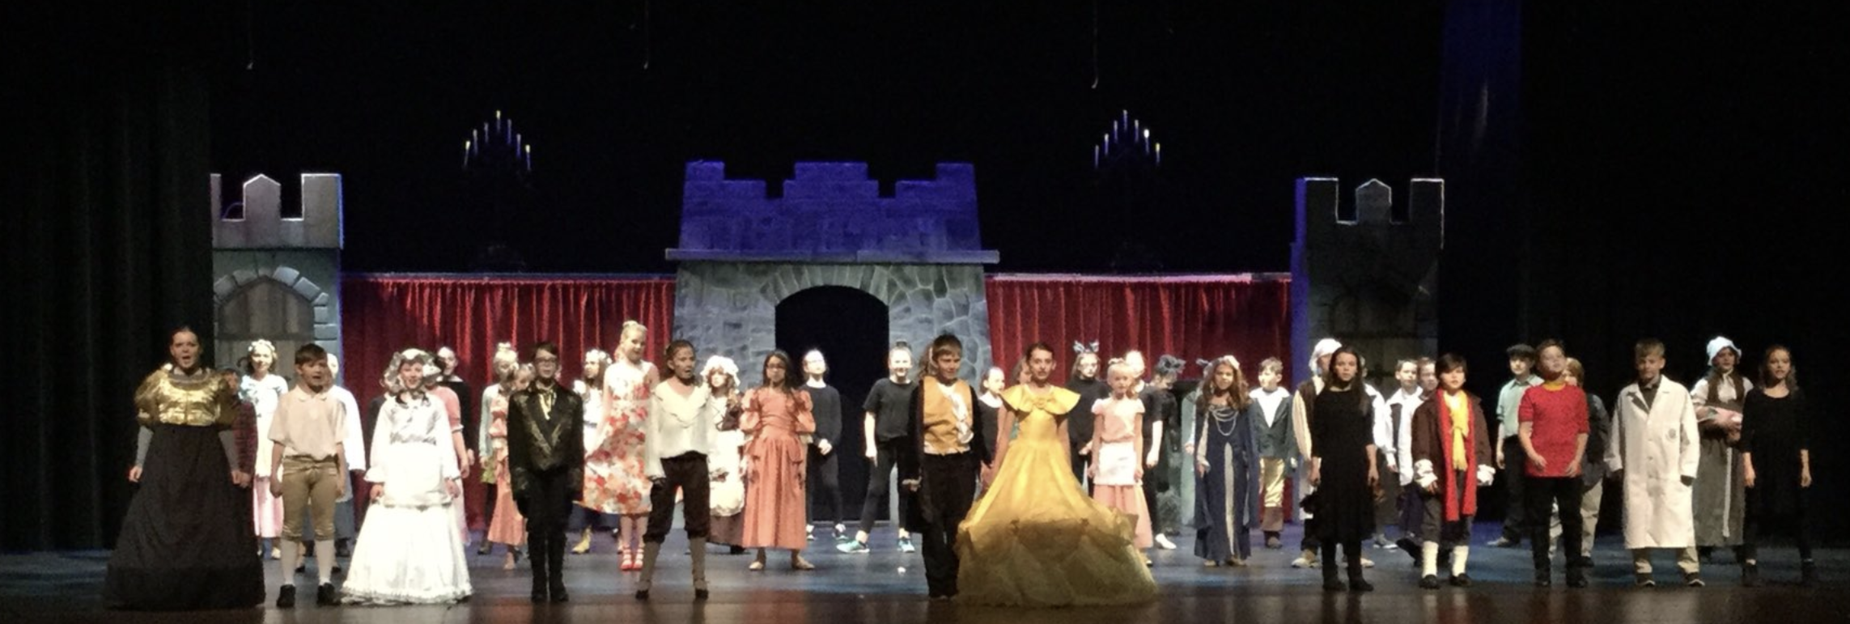 Curtain Call for CCIS Beauty and the Beast